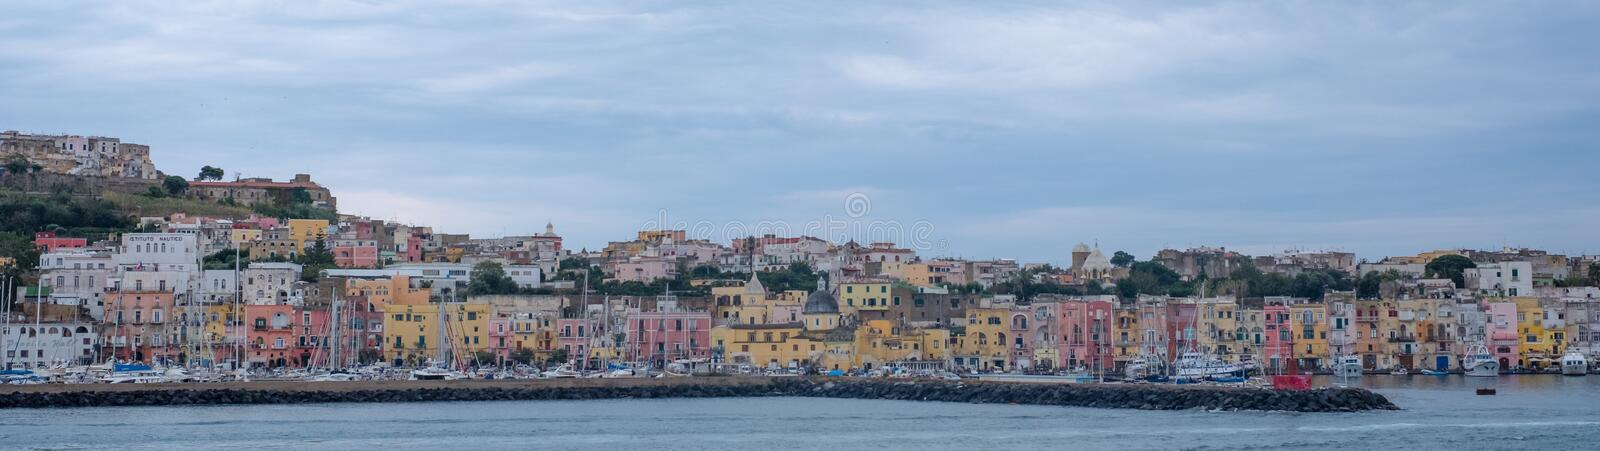 Panoramic photo of the harbour front with pastel coloured houses on the island of Procida Italy, photographed from the water. royalty free stock photography